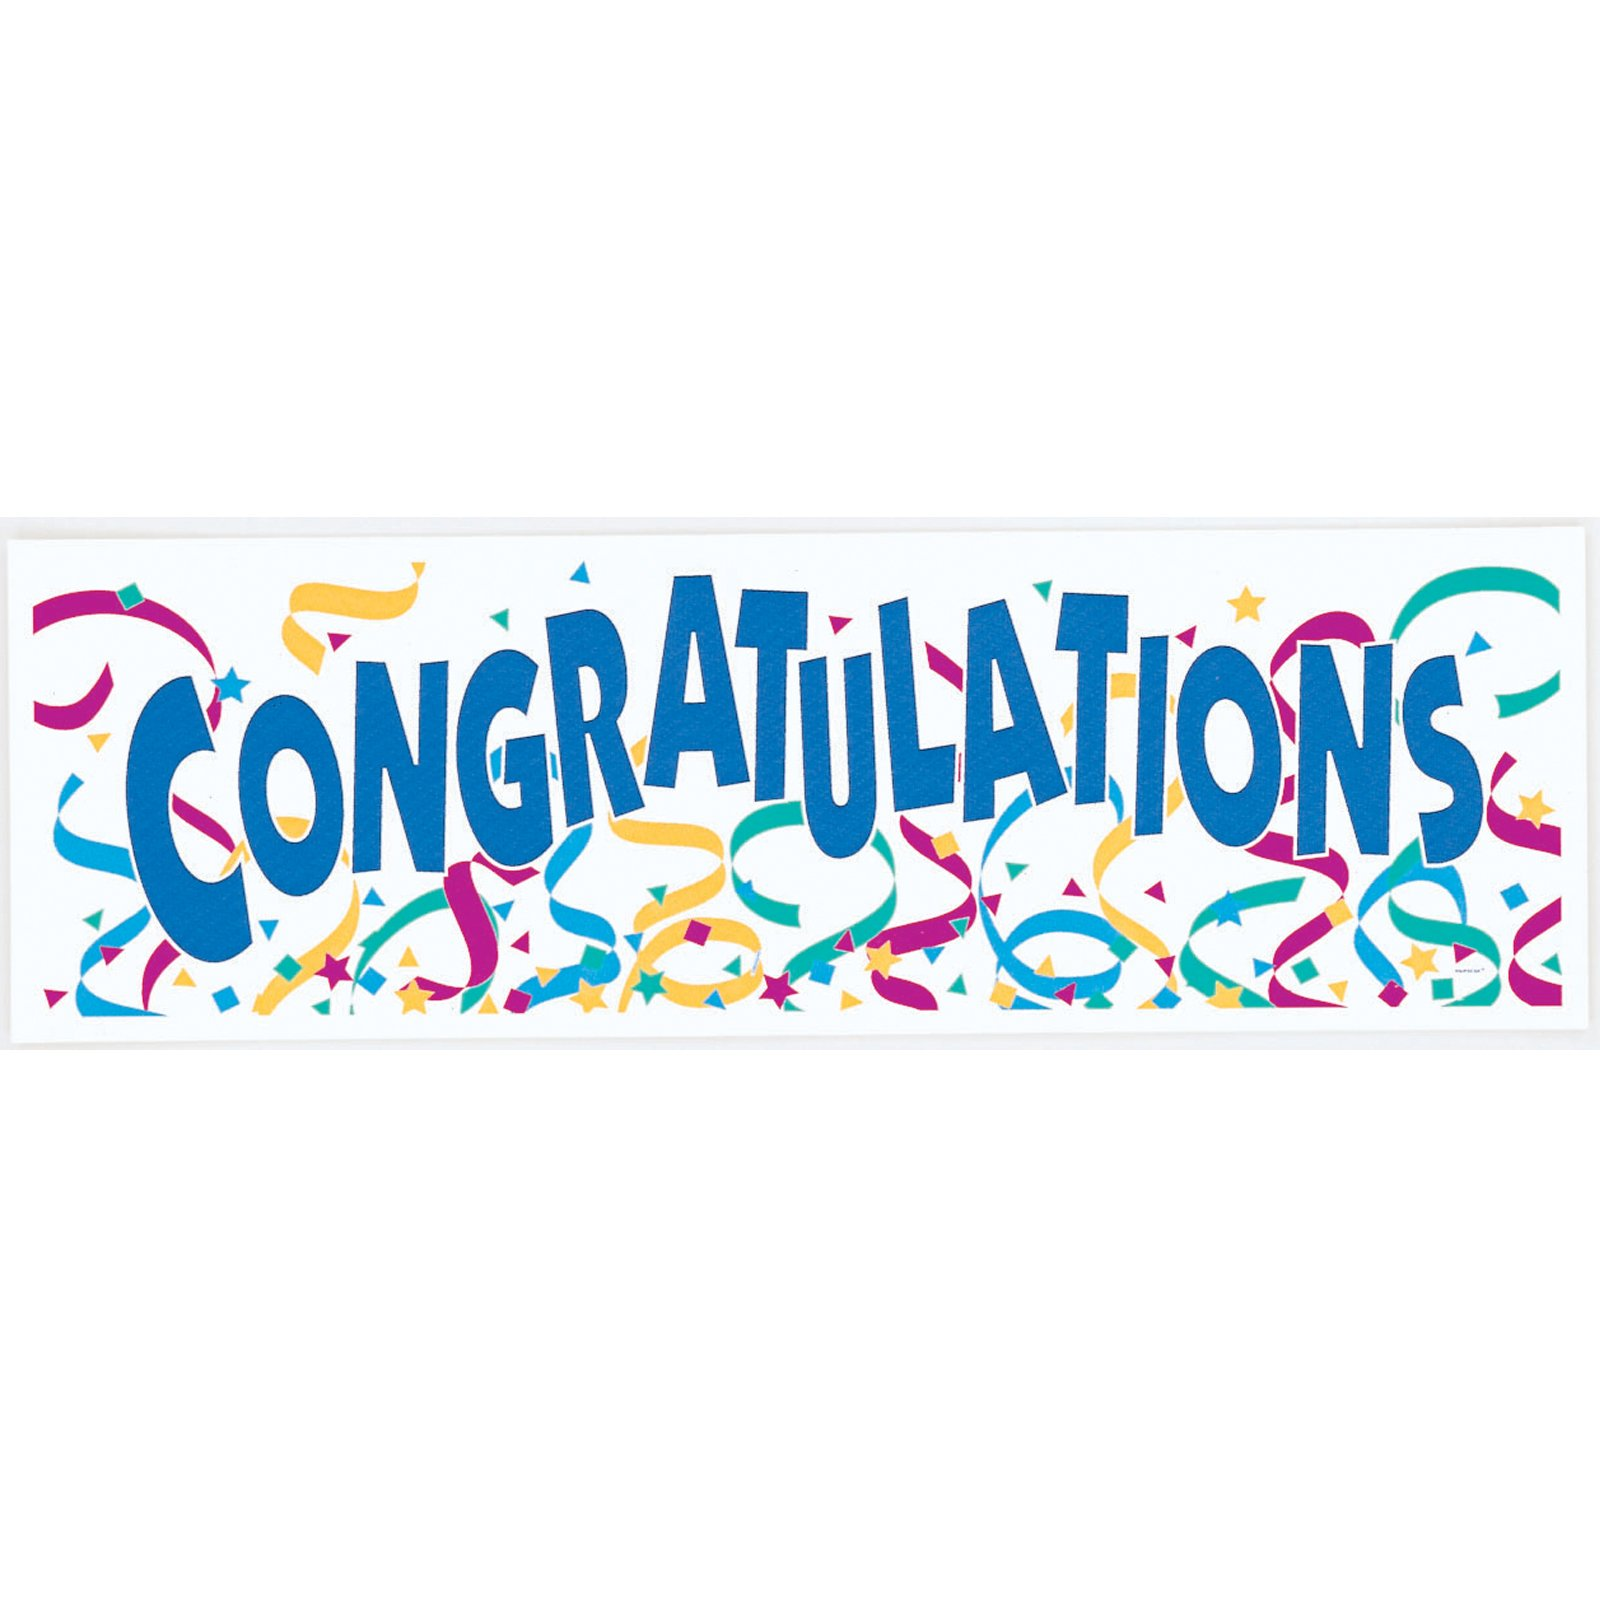 Congratulations-gallery-for-congratulation-free-clip-art.jpg